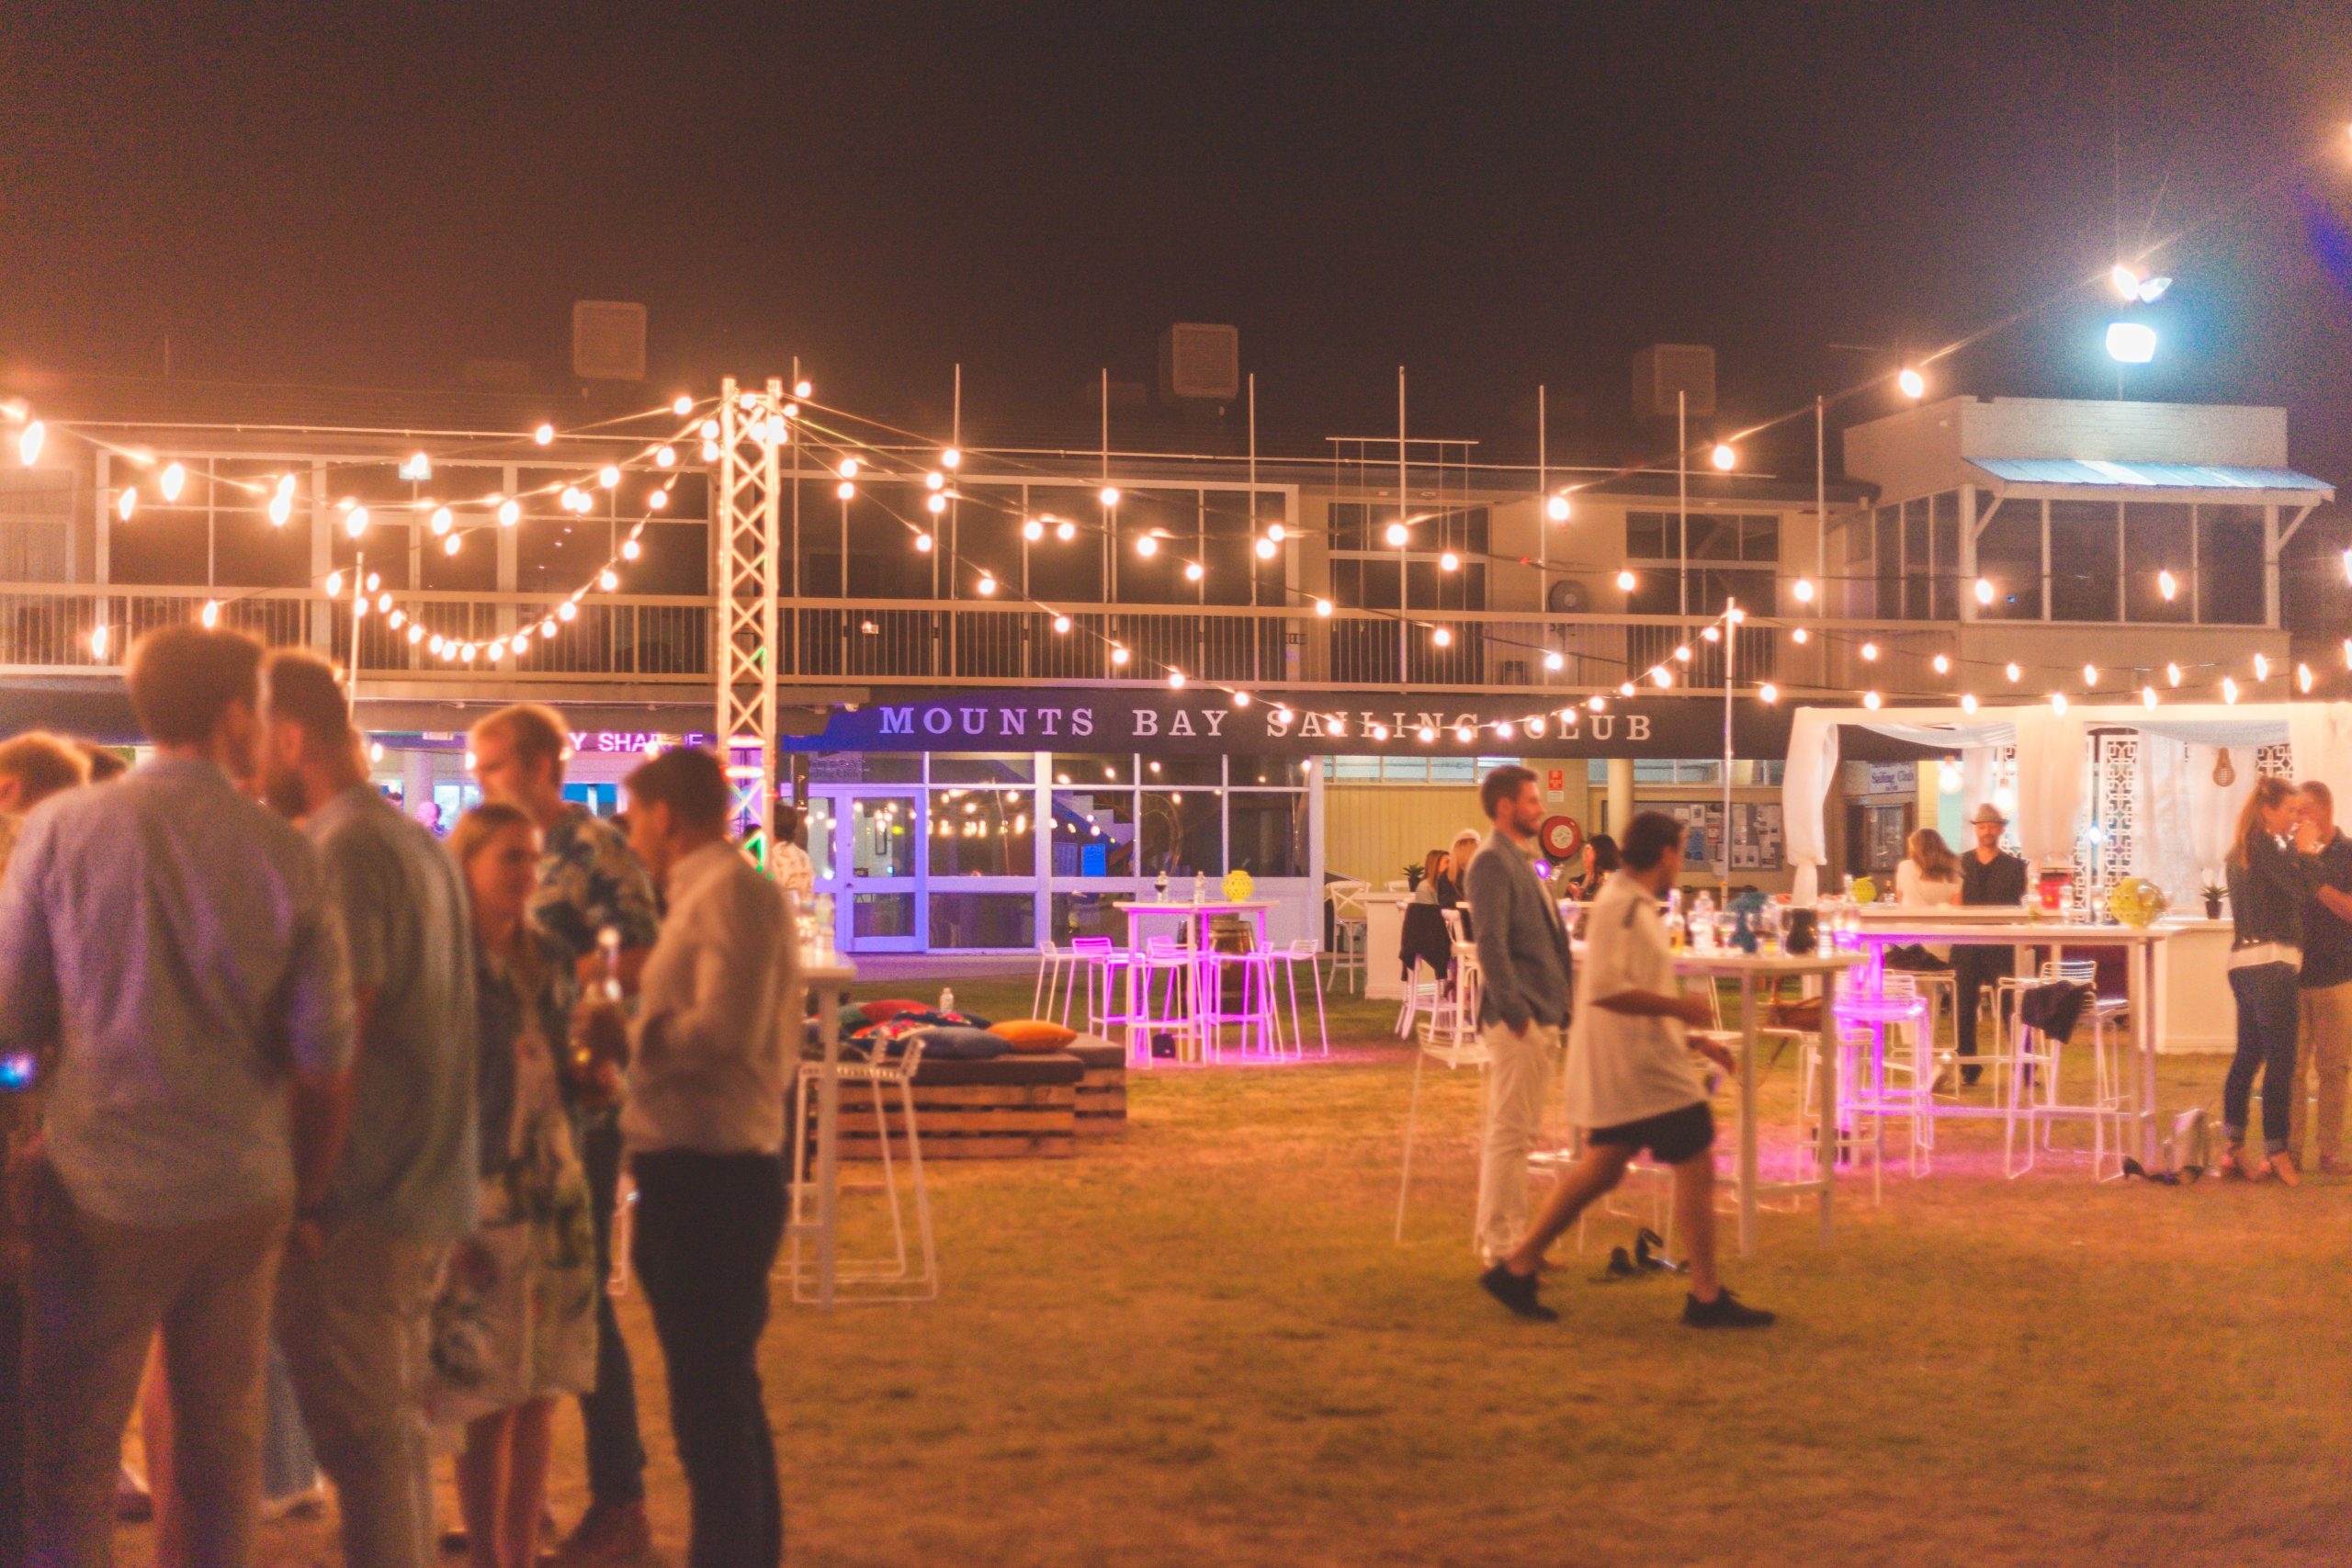 A business event happening in Mounts Bay at night